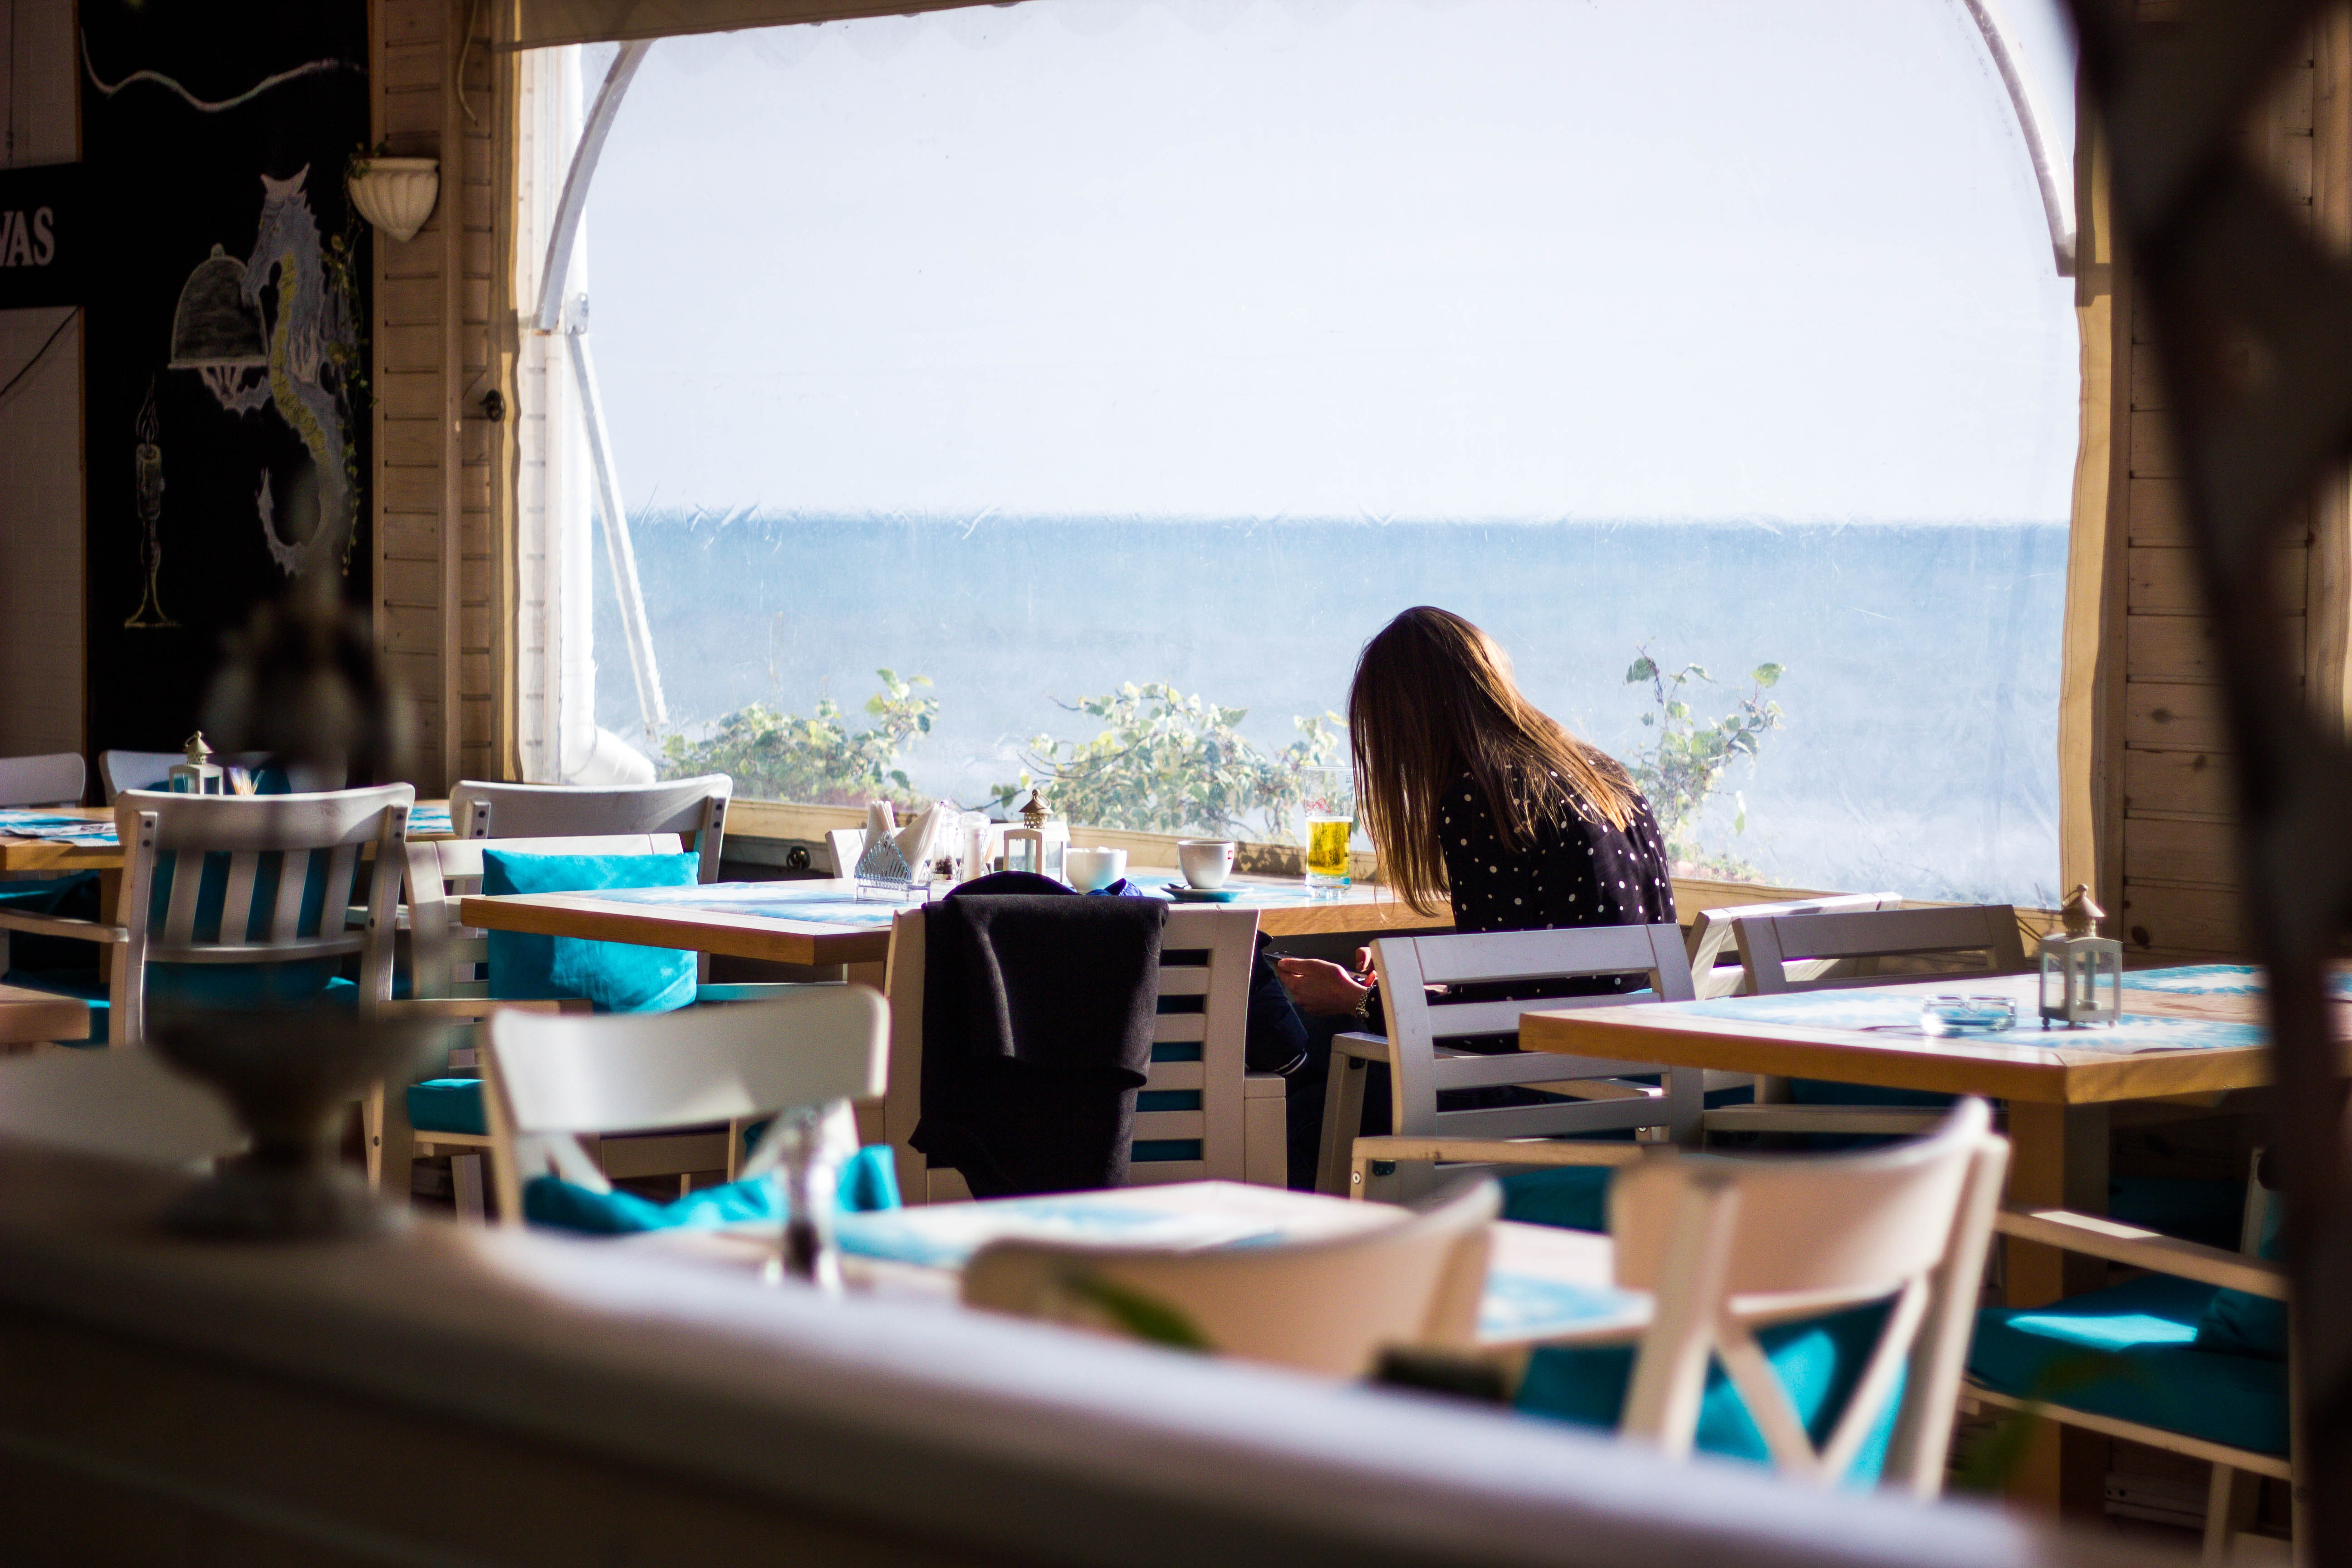 Woman Sitting on Chair With View of Sea, Beach, Sea, Wooden chairs, Window, HQ Photo